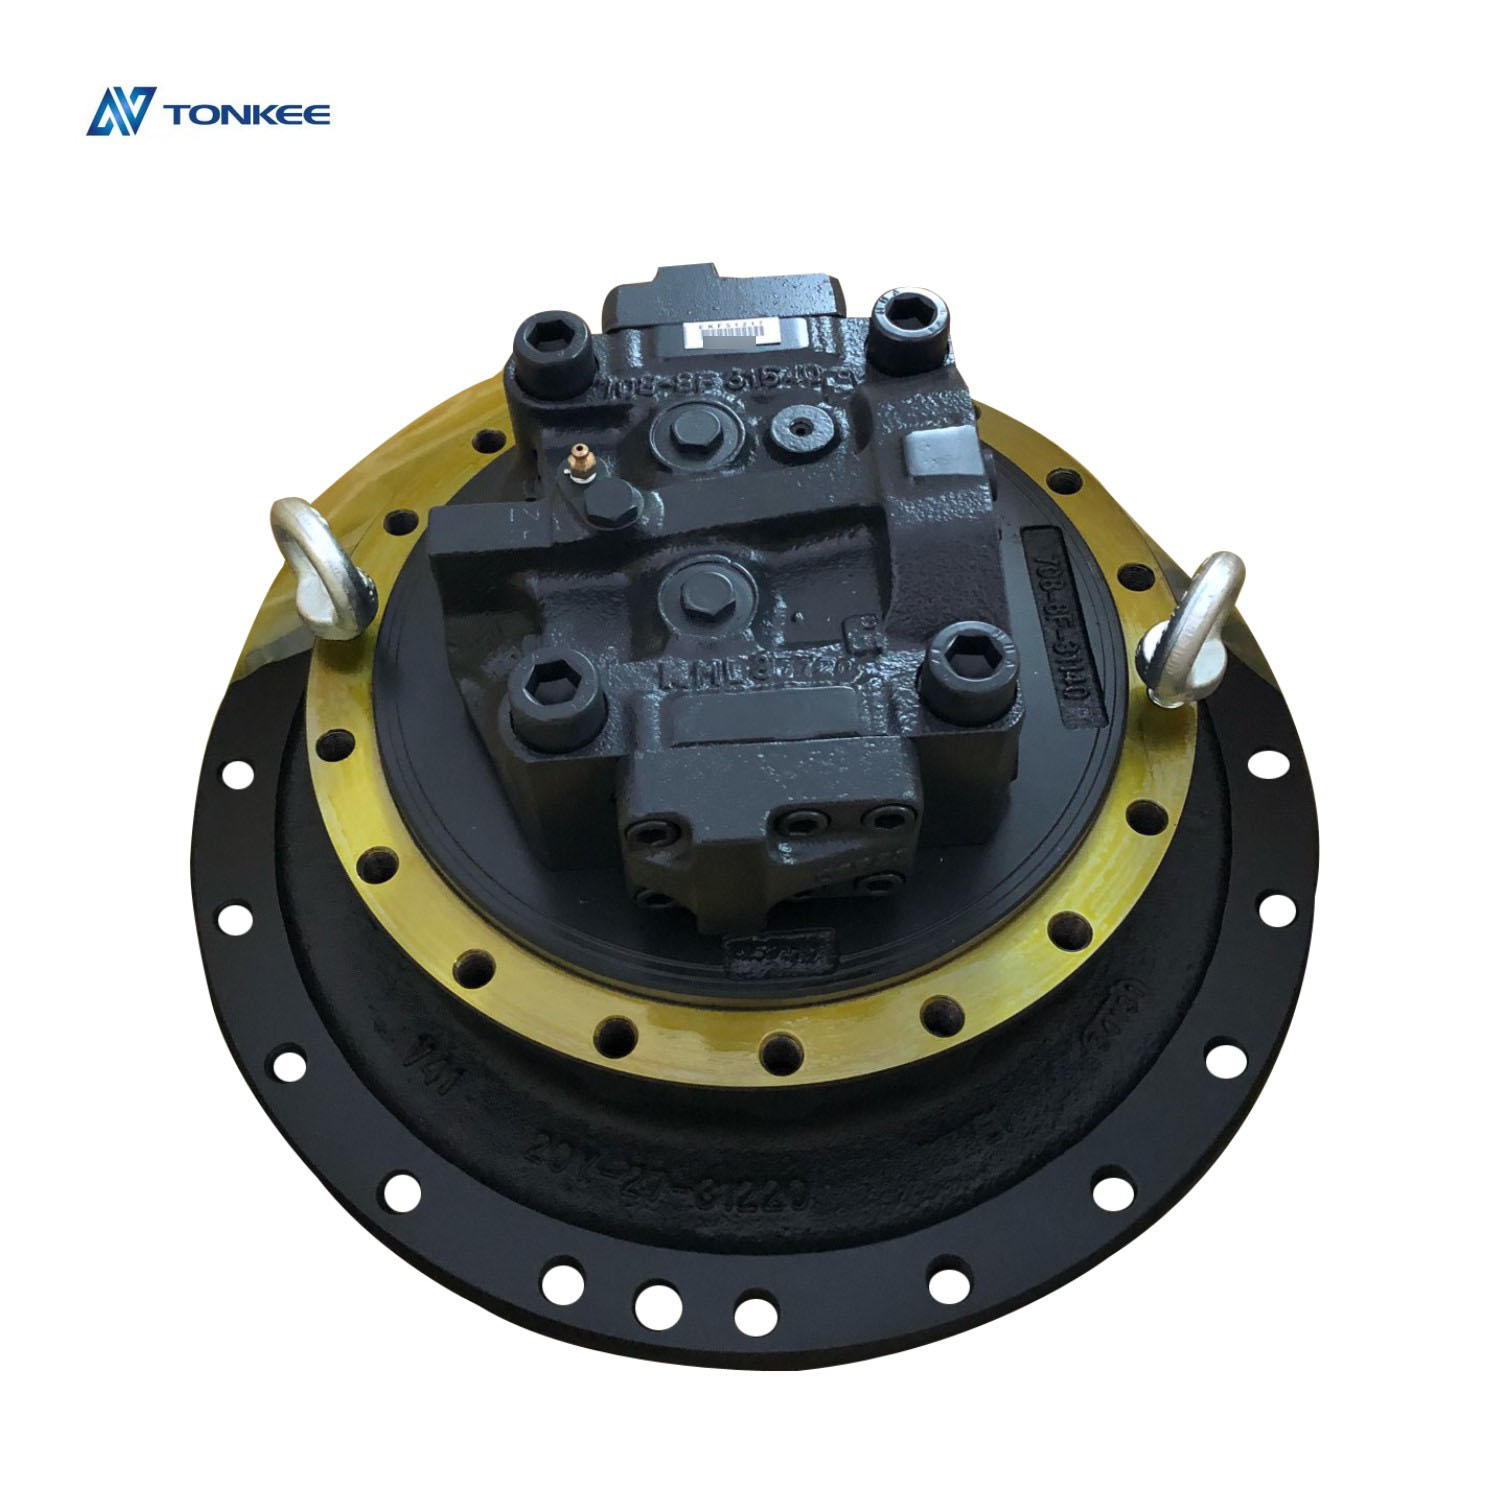 NEW 708-8F-31540 708-8F-31140 final drive group PC200-7 PC200-8 travel motor assy excavator hydraulic travel device for KOMATSU excavation